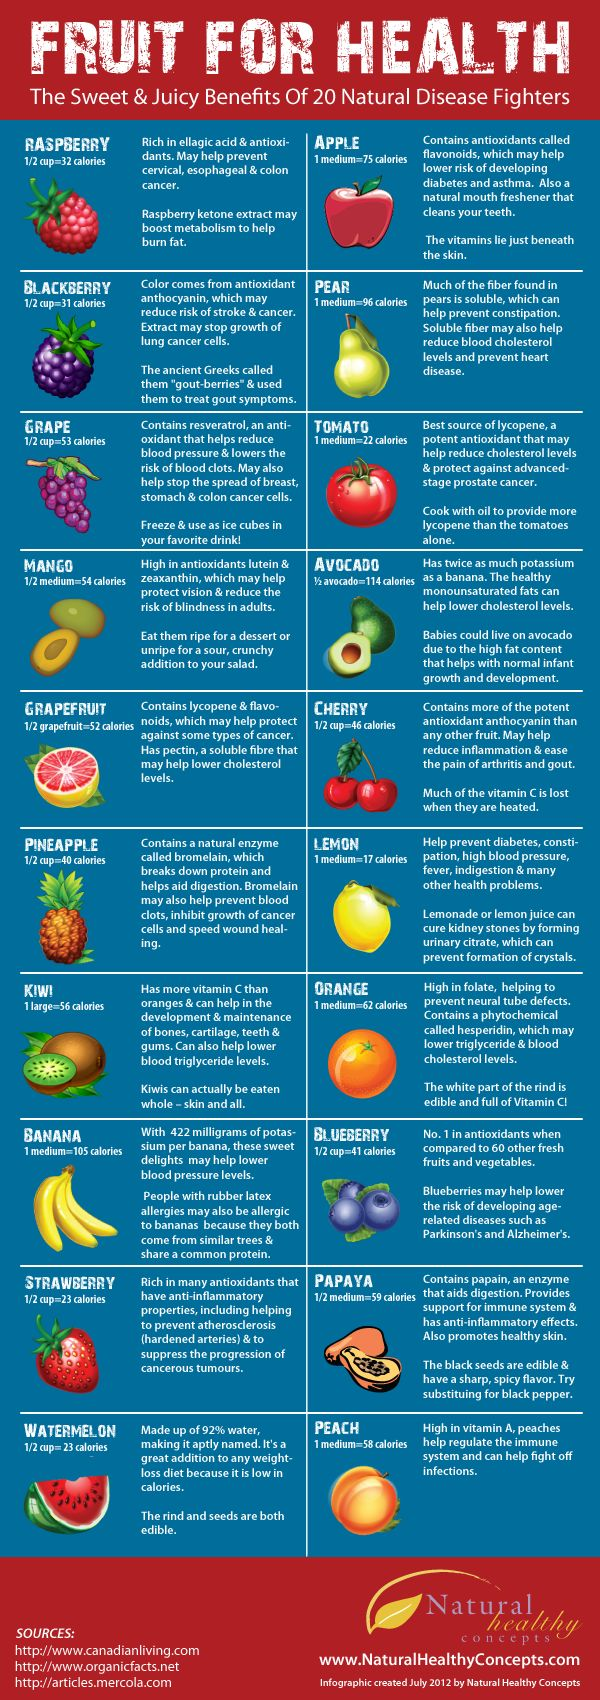 Fruit for Health- As this infographic shows, not only is fruit reasonably low in calories despite its reputation for being so sugary, the health benefits of fruit are also way too good to even consider cutting it from your diet -especially for those trying to lose weight. In fact, watermelon, pineapple, grapefruit and pear could even help you lose weight.